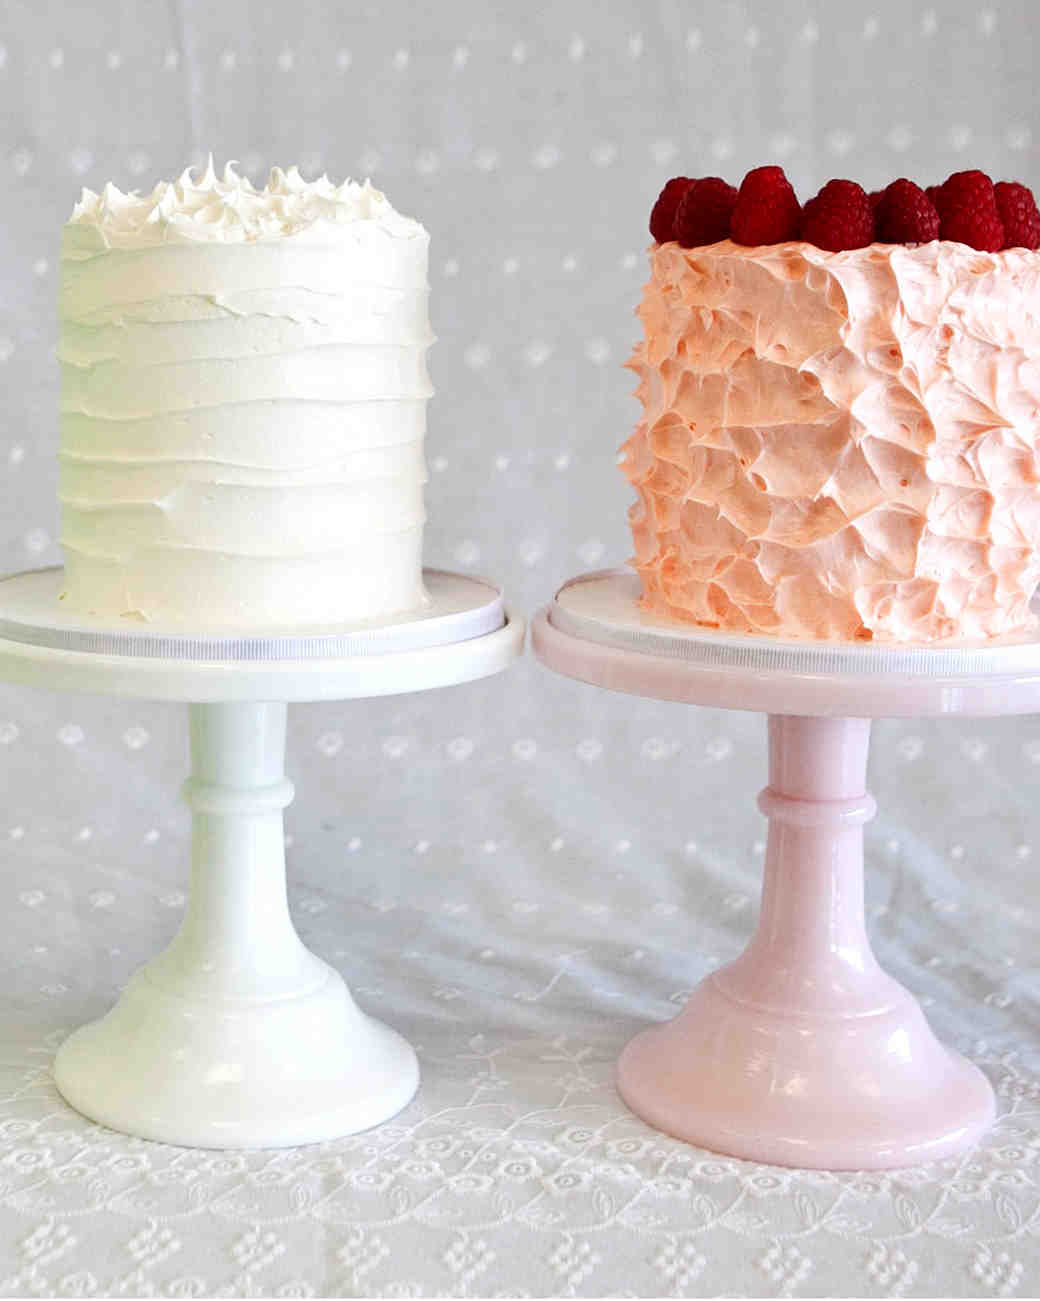 wedding cakes icing recipes a sweet guide to choosing a frosting for your wedding cake 24529